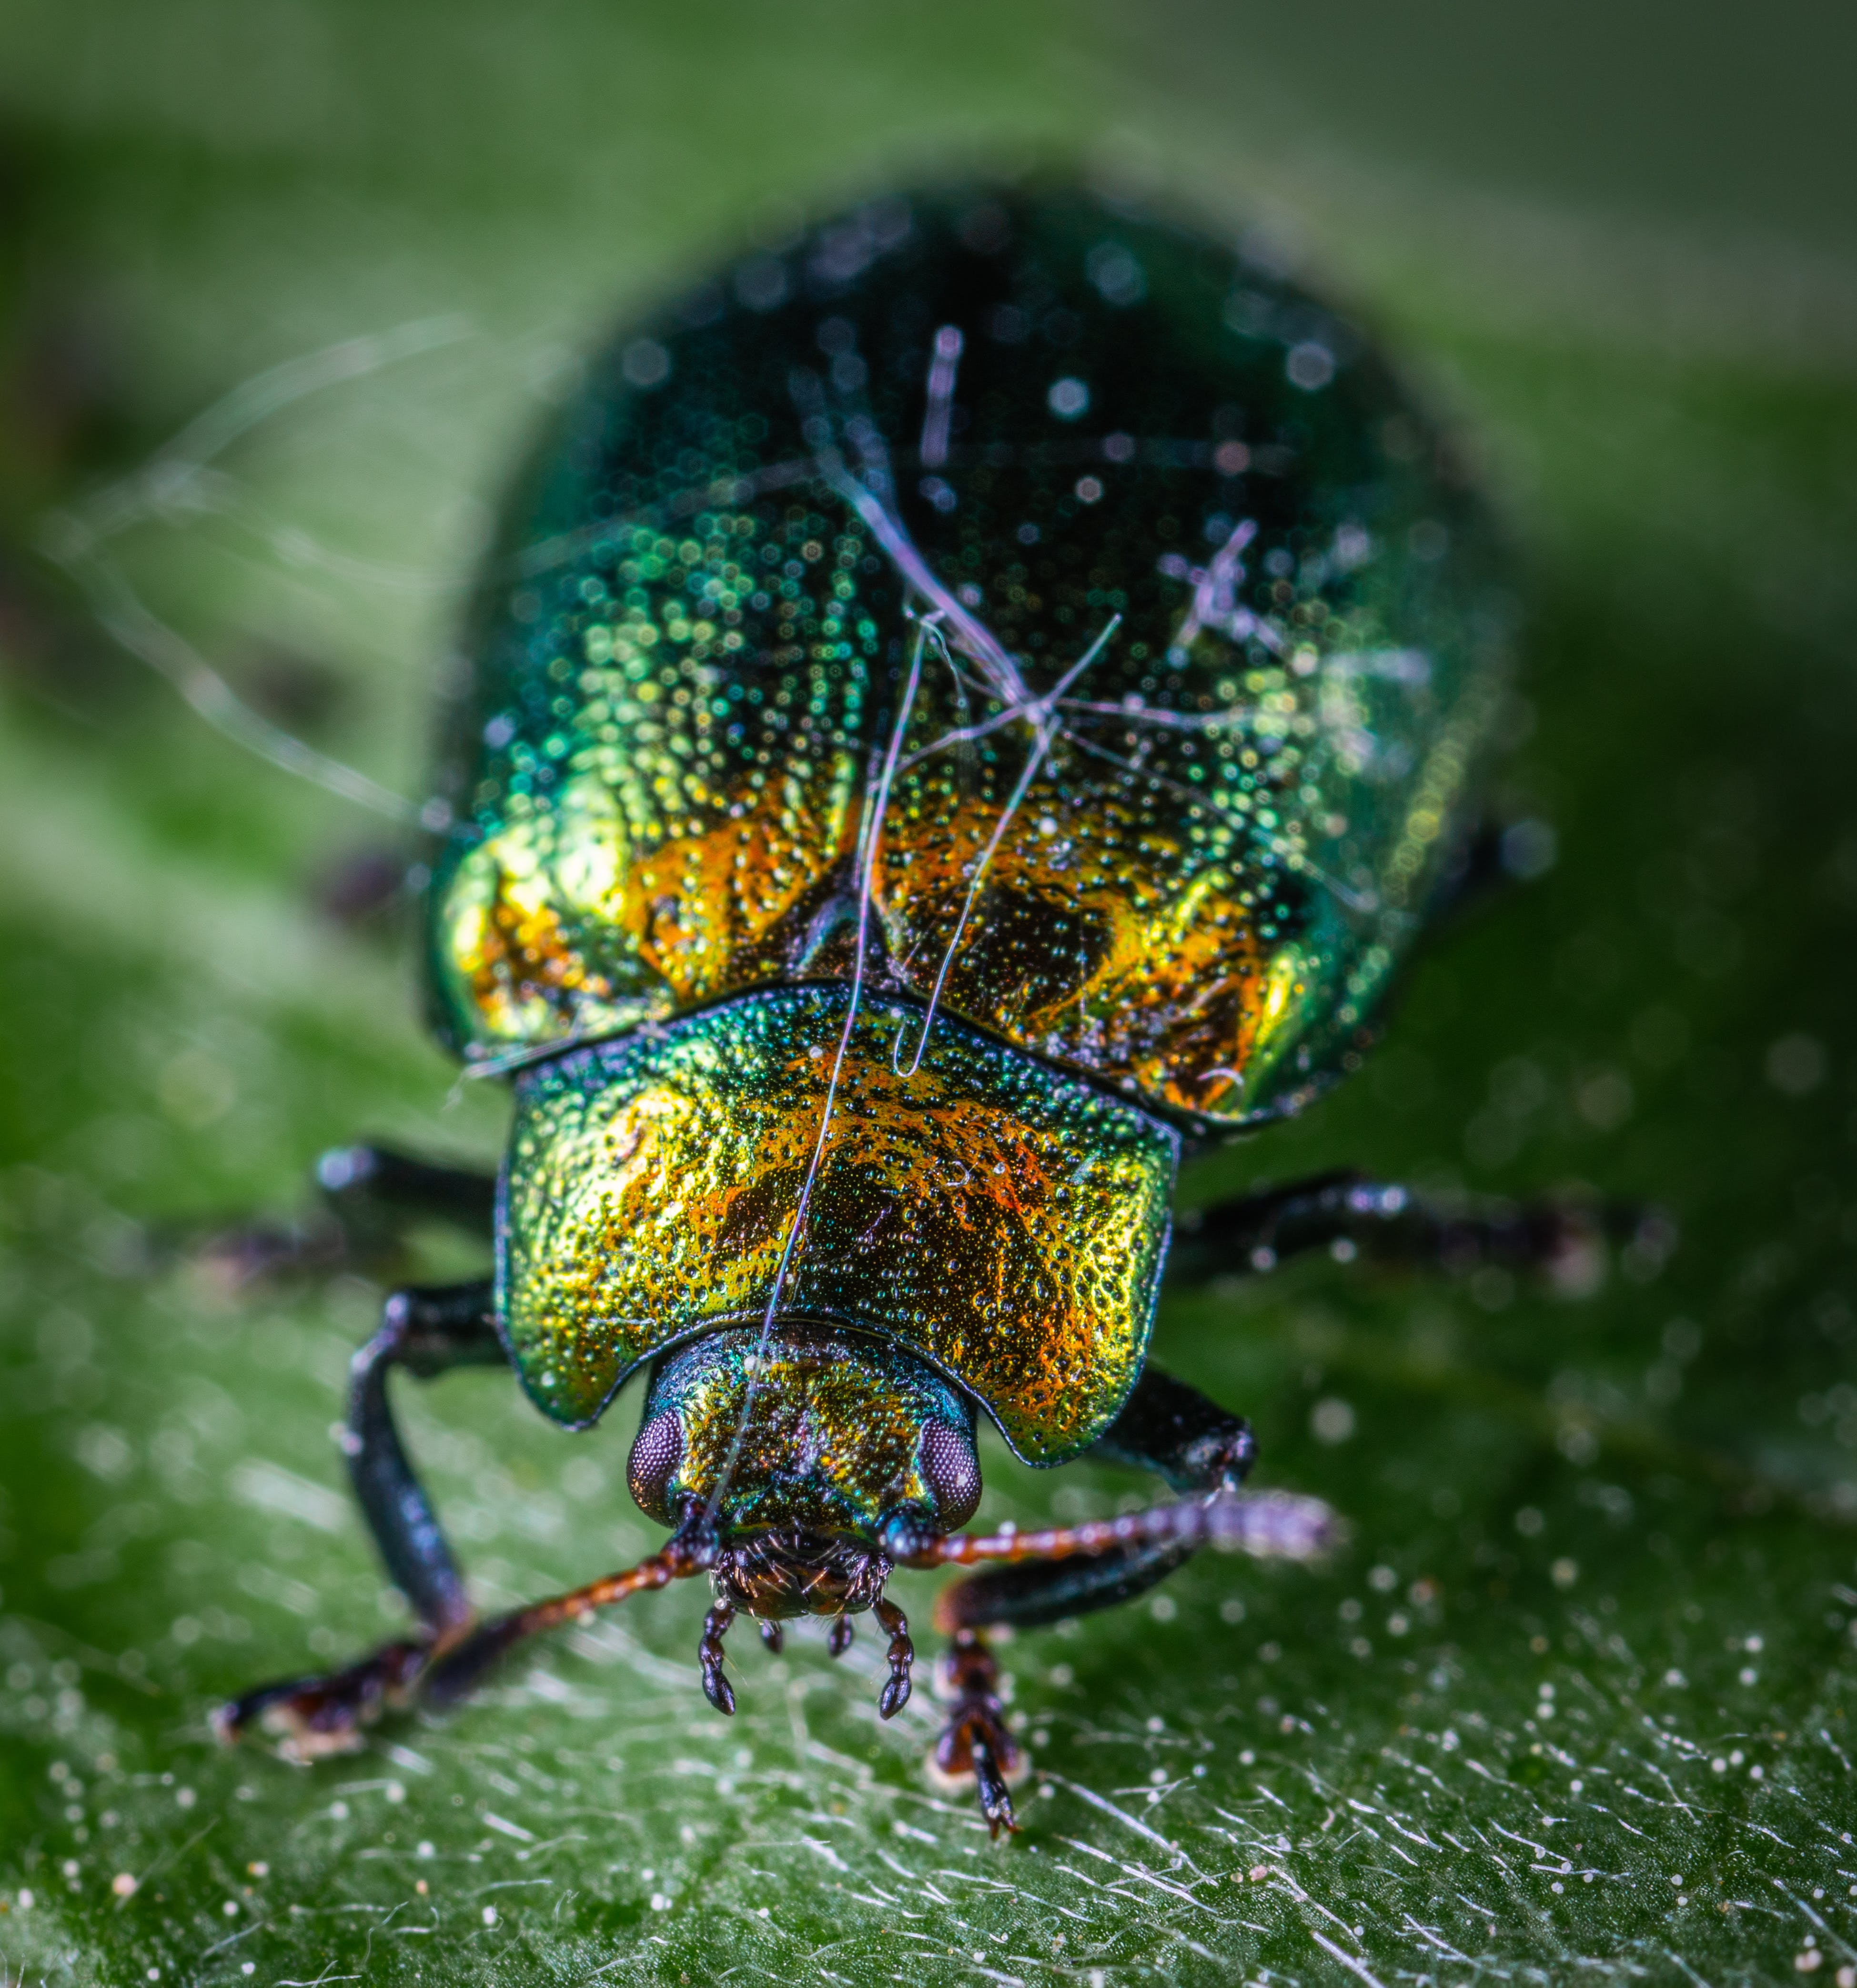 Close Shot of Green and Yellow Beetle